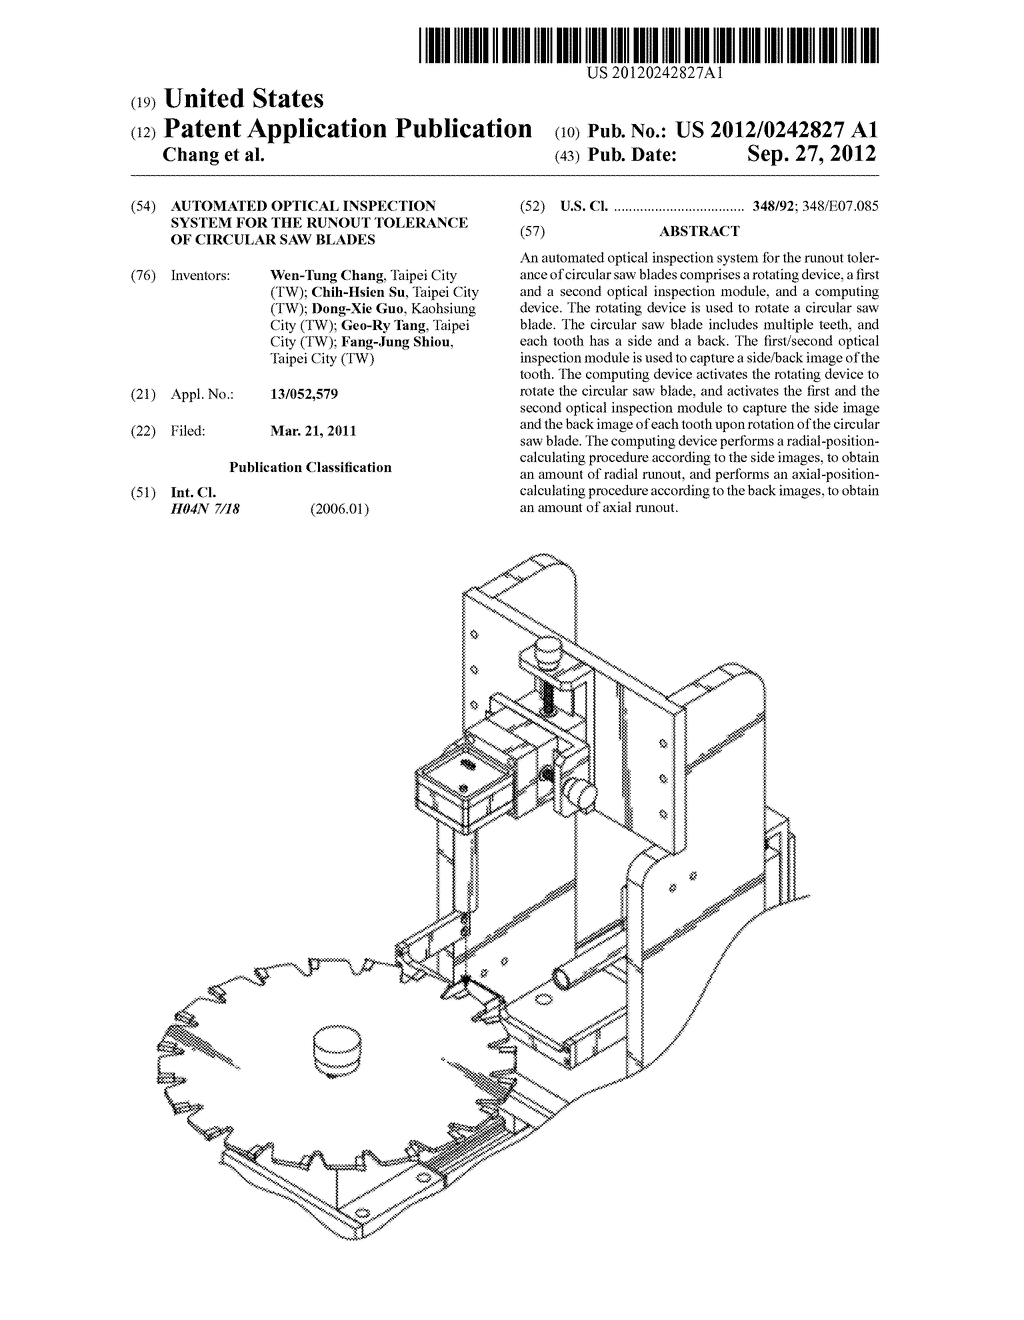 AUTOMATED OPTICAL INSPECTION SYSTEM FOR THE RUNOUT TOLERANCE OF CIRCULAR     SAW BLADES - diagram, schematic, and image 01